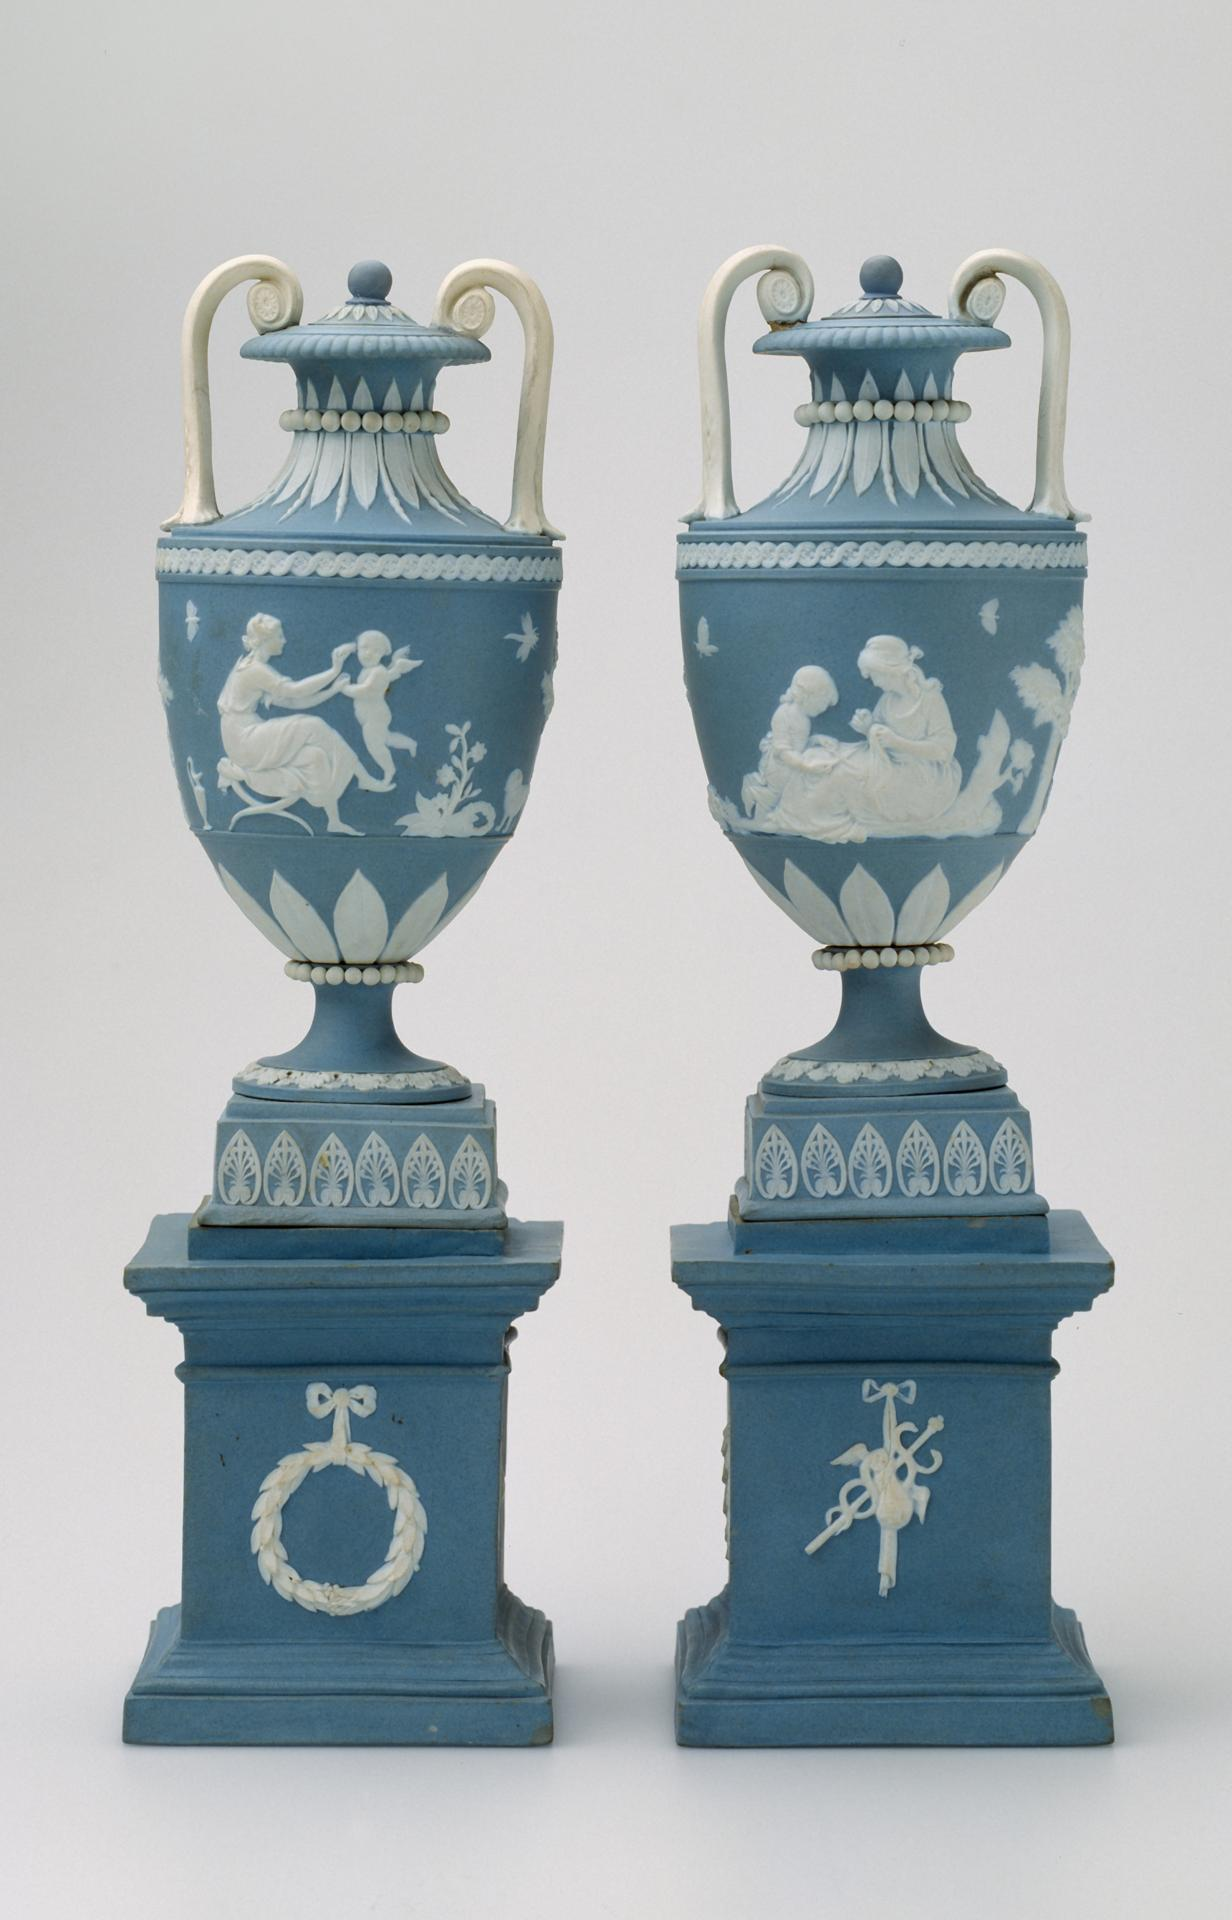 Pair of covered vases and pedestals